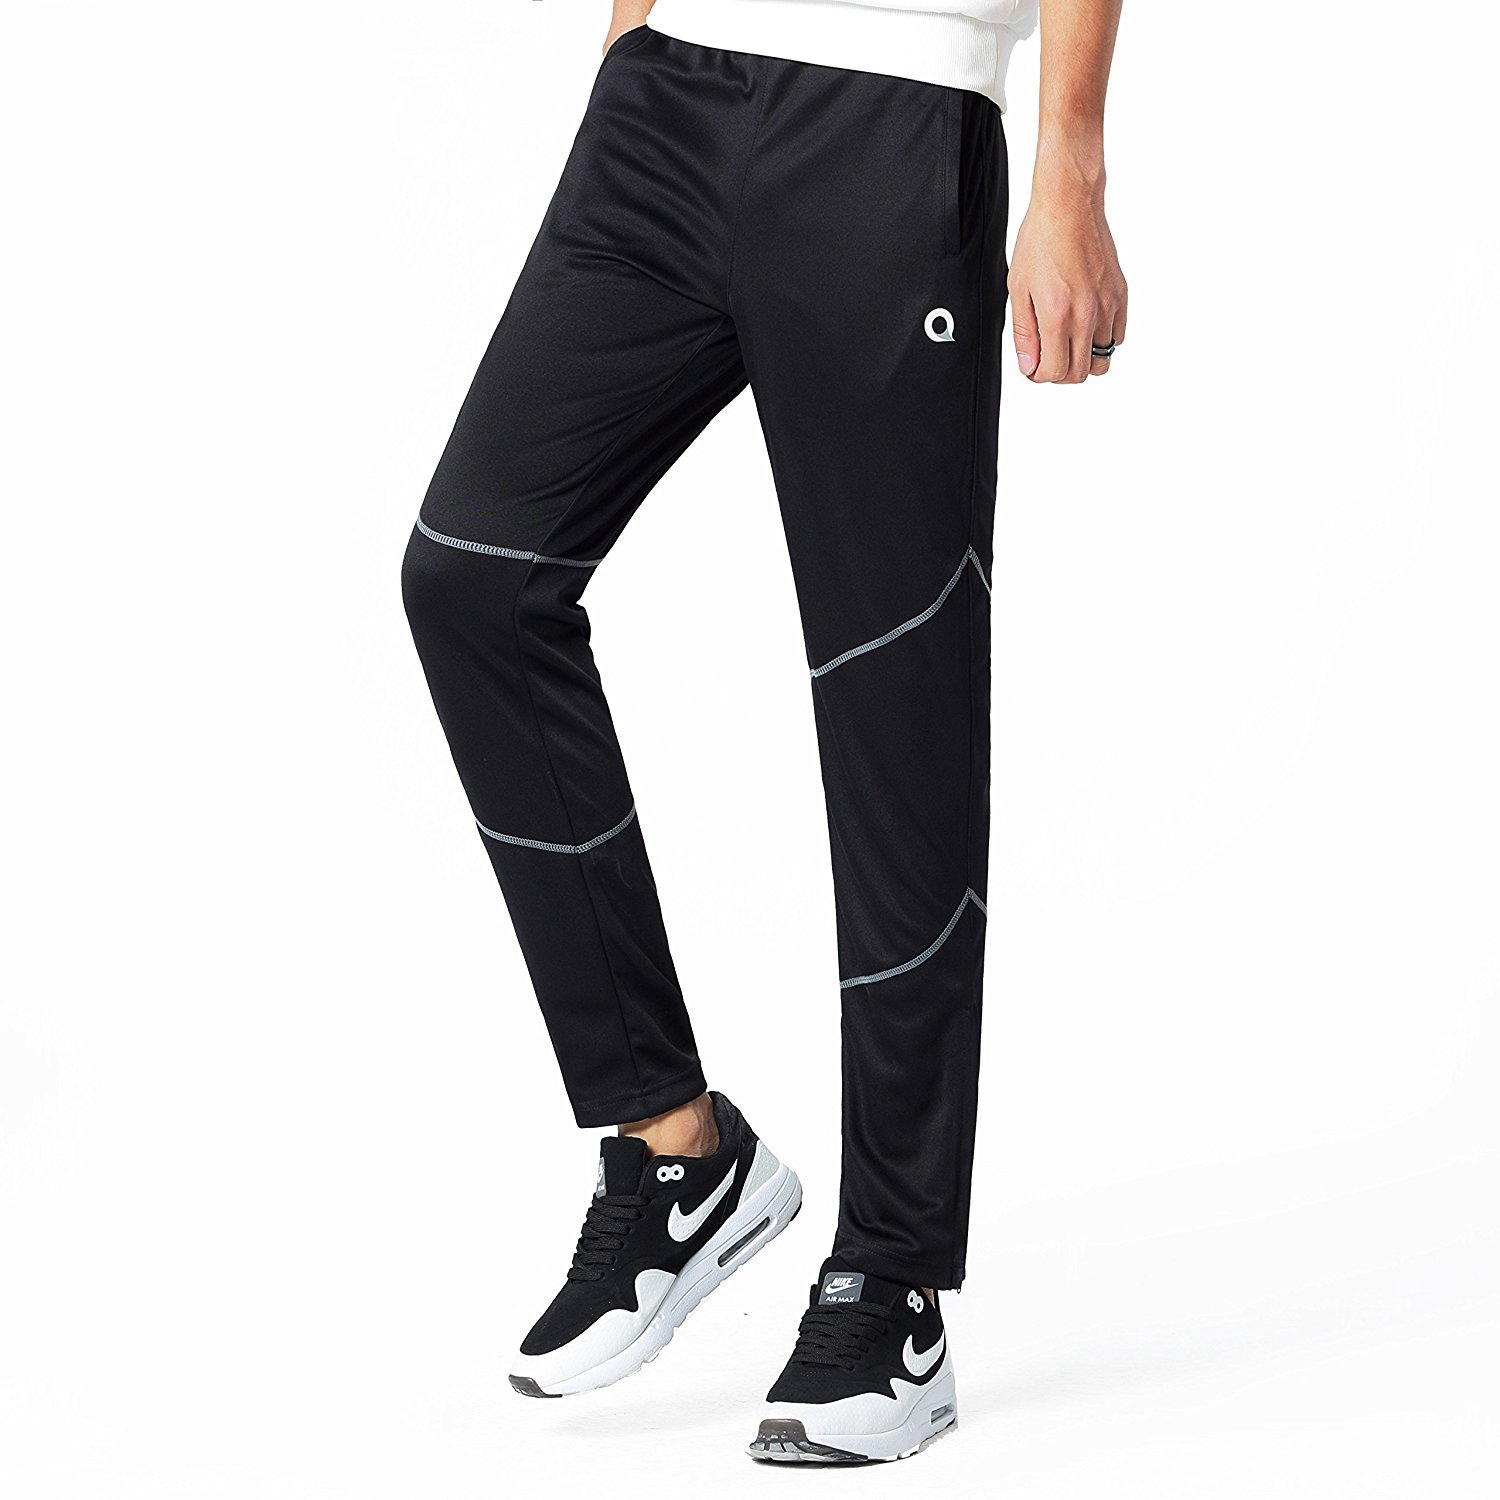 Ogeenier Men's Performance Joggers Pants Gym Workout Pants Fitness Running Trousers Sweatpant